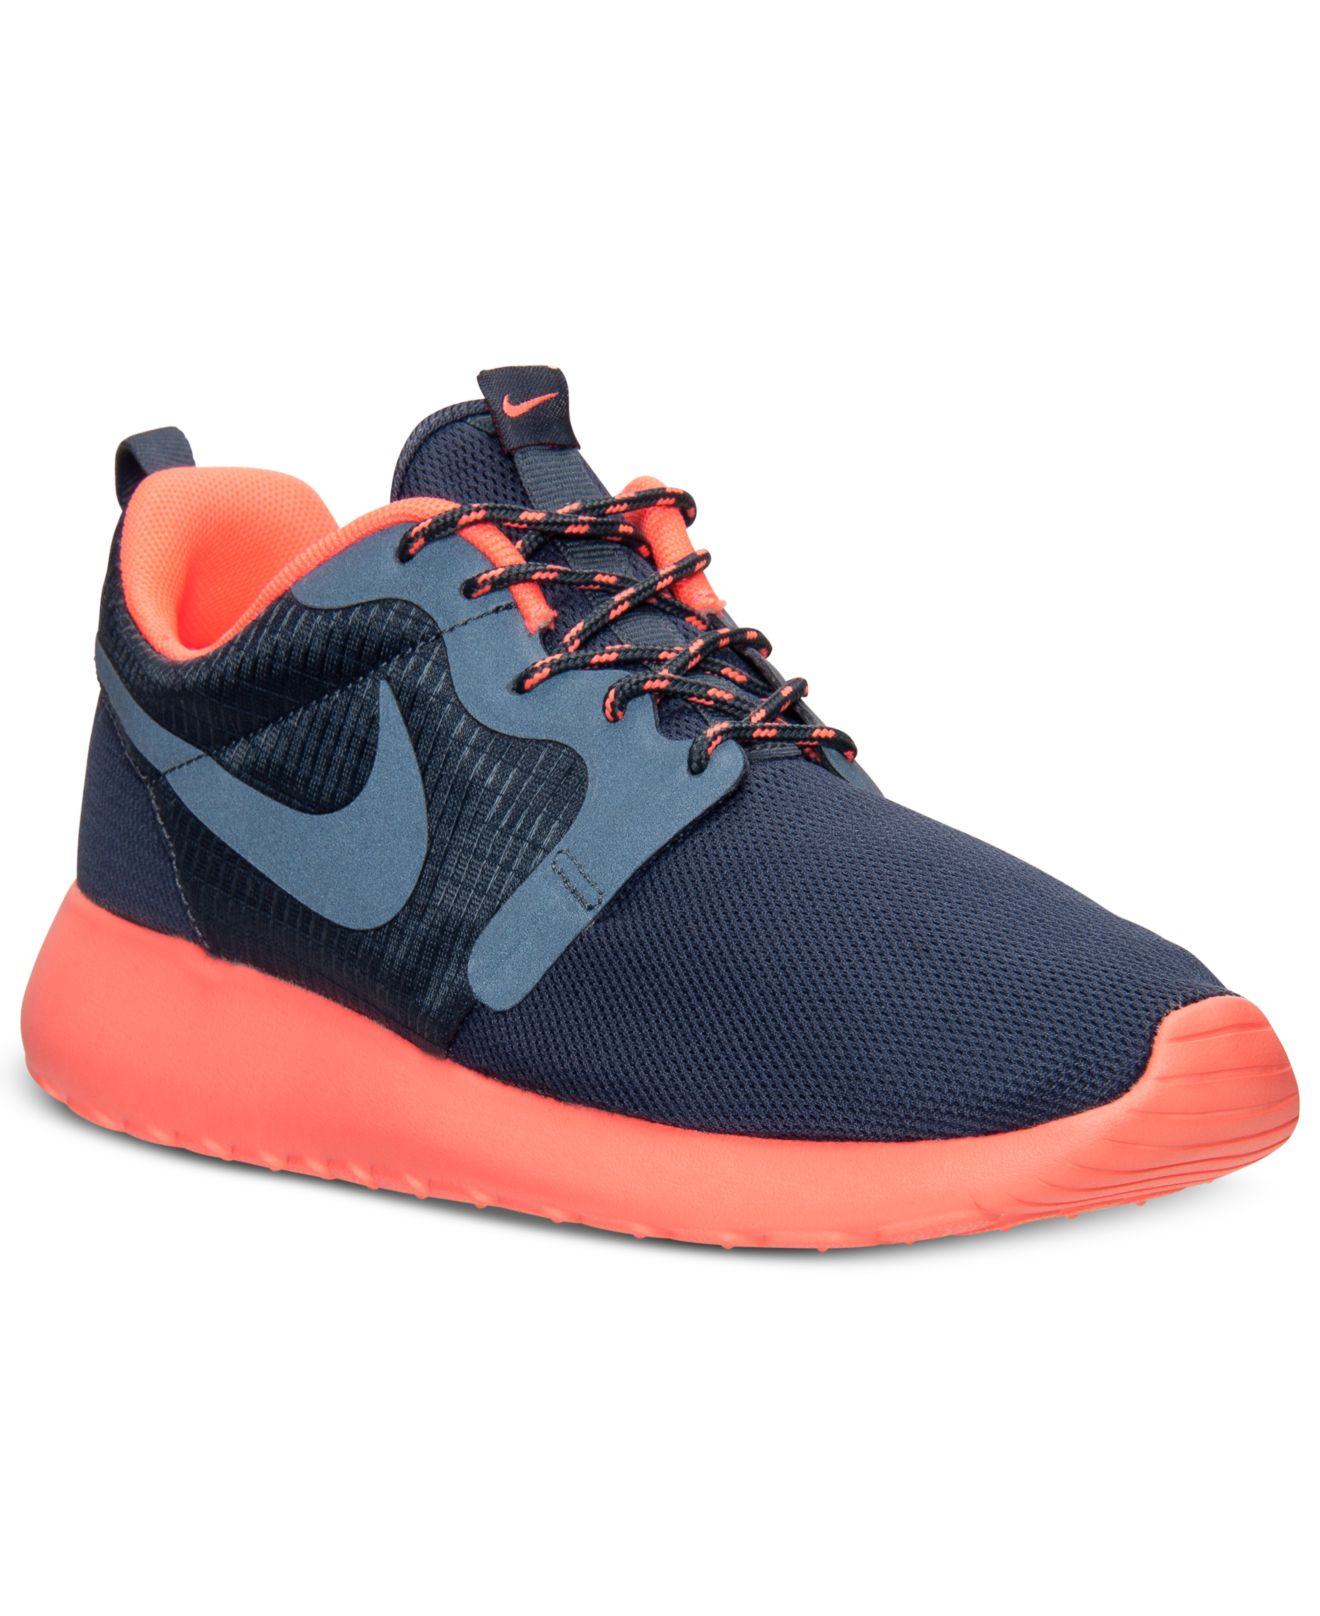 nike women 39 s roshe run hyperfuse casual sneakers from. Black Bedroom Furniture Sets. Home Design Ideas